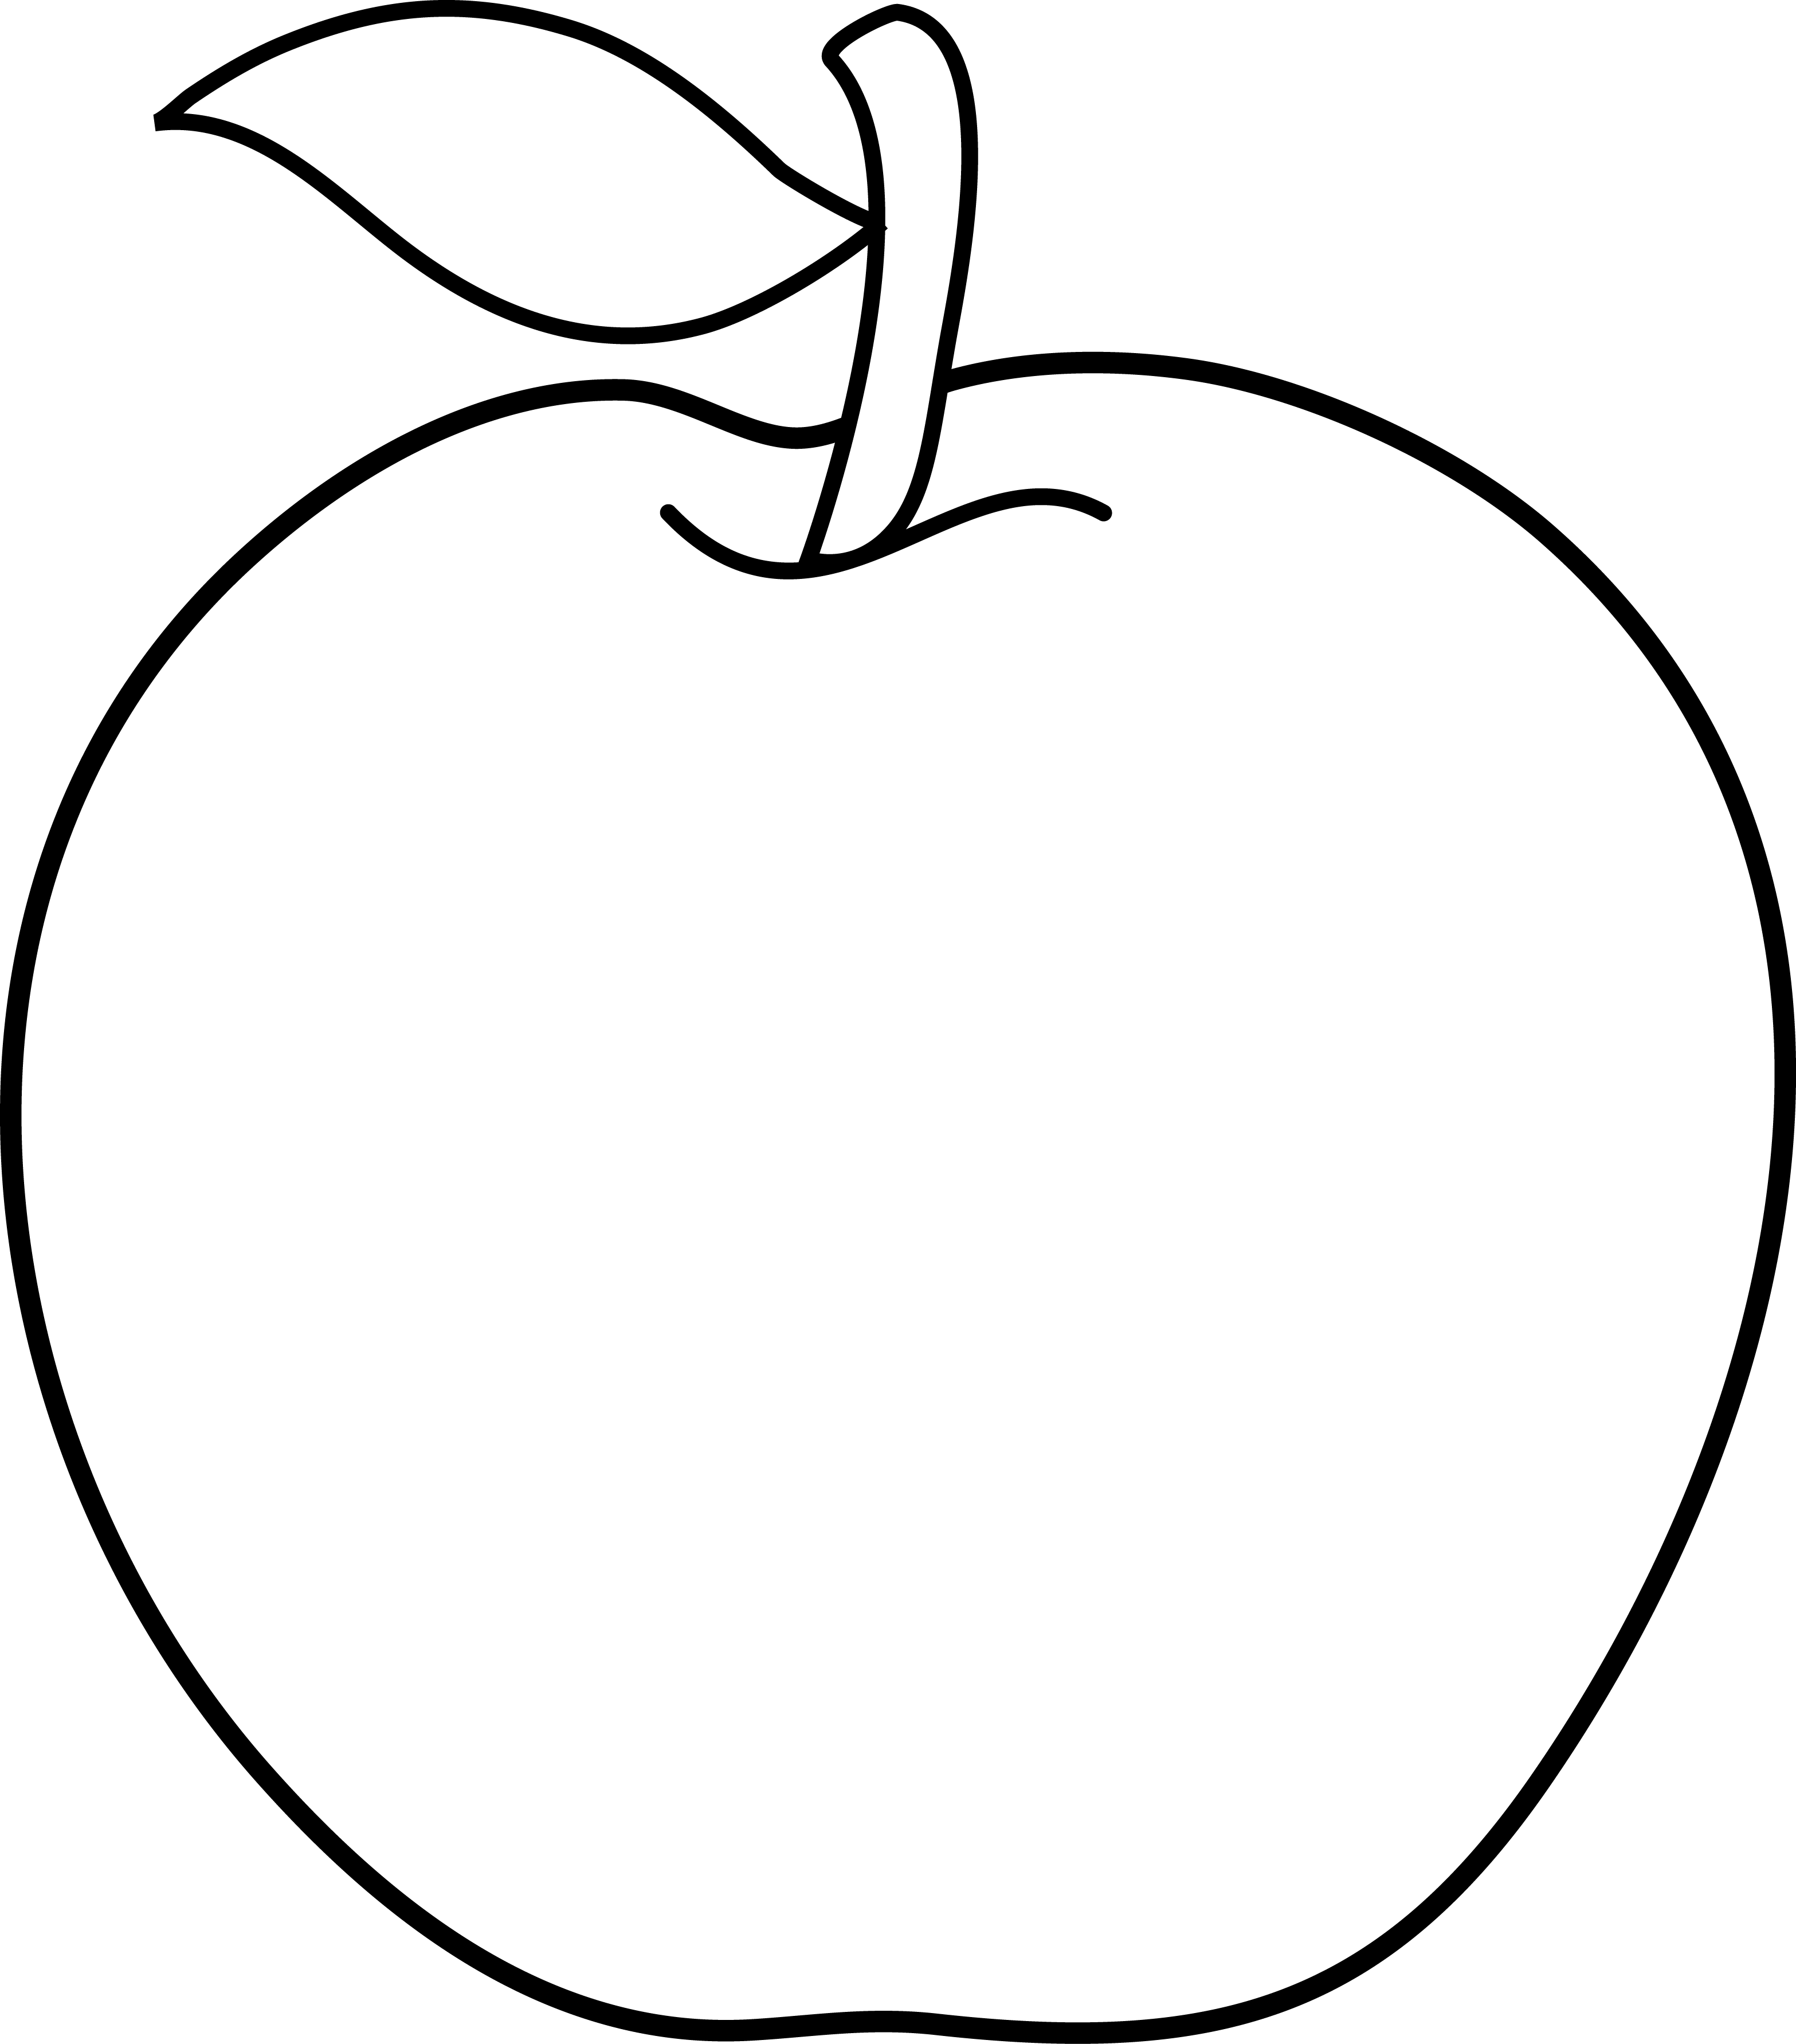 black%20and%20white%20apple%20tree%20clipart